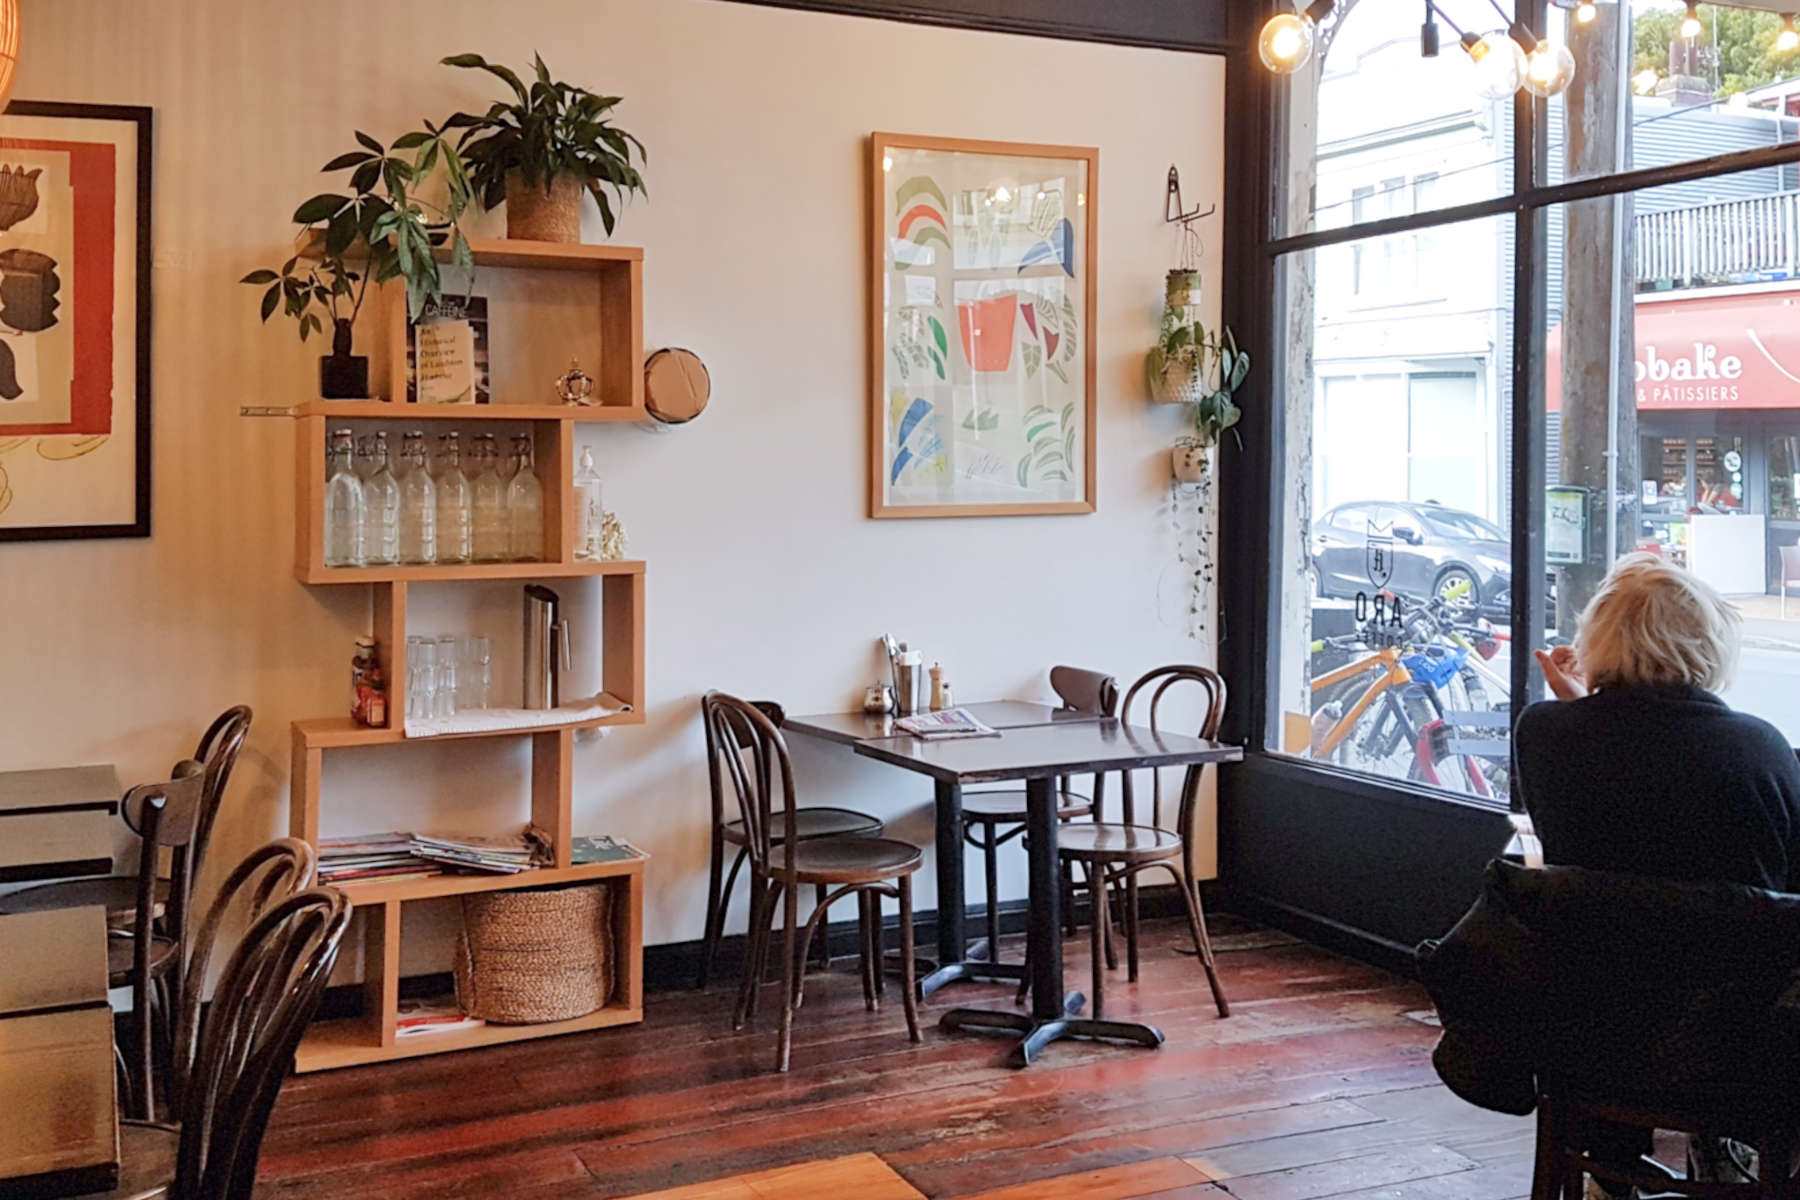 Aro Cafe - front room view to street